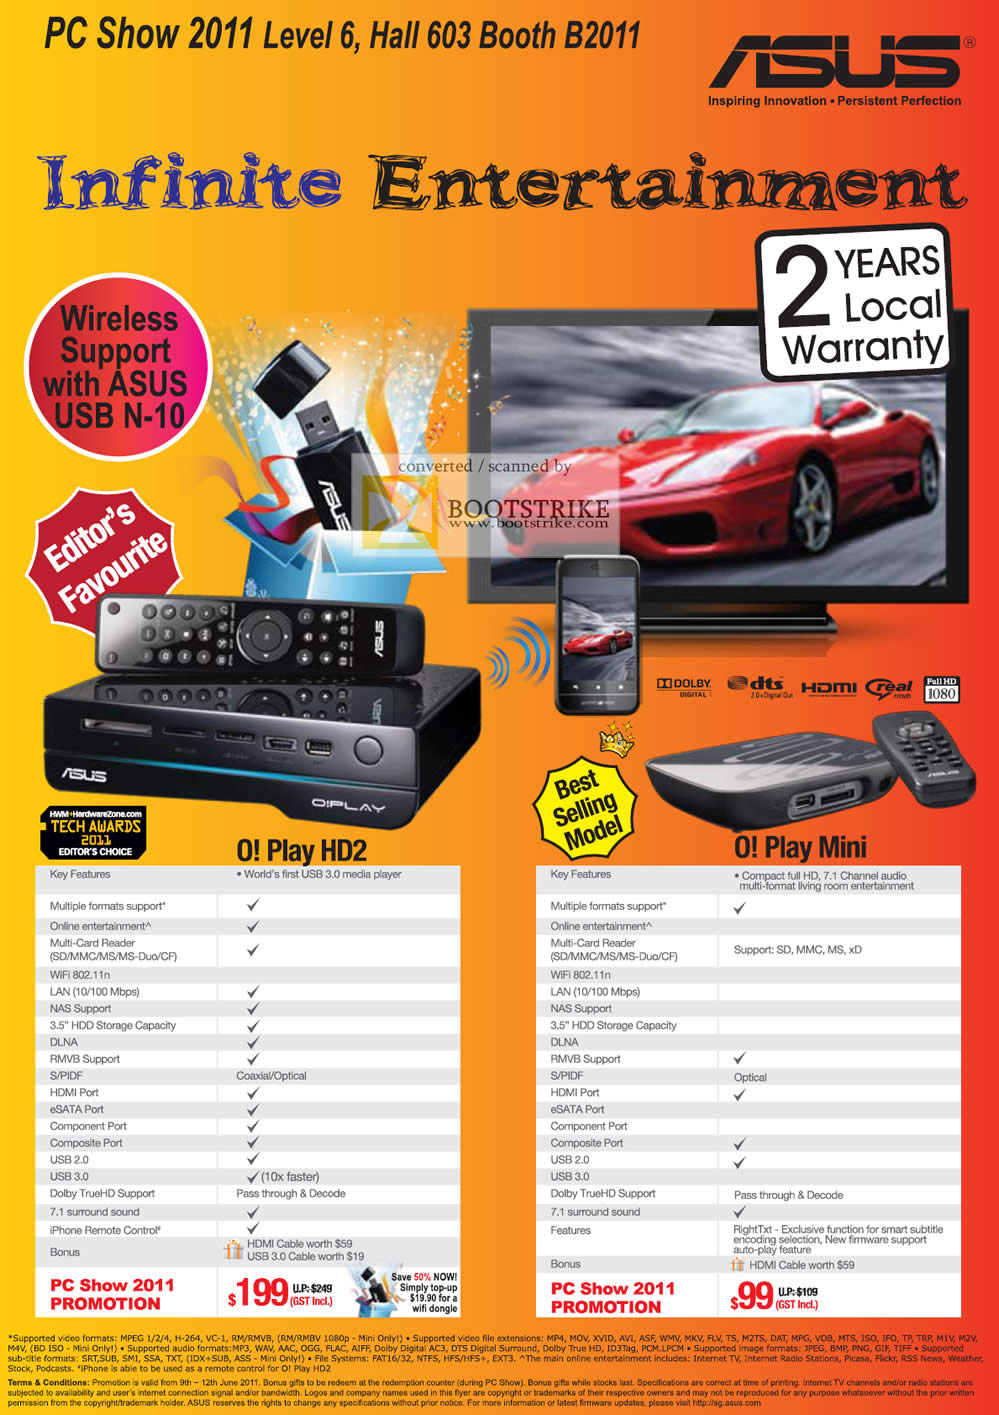 PC Show 2011 price list image brochure of ASUS O! Play Media Player HD2 Mini